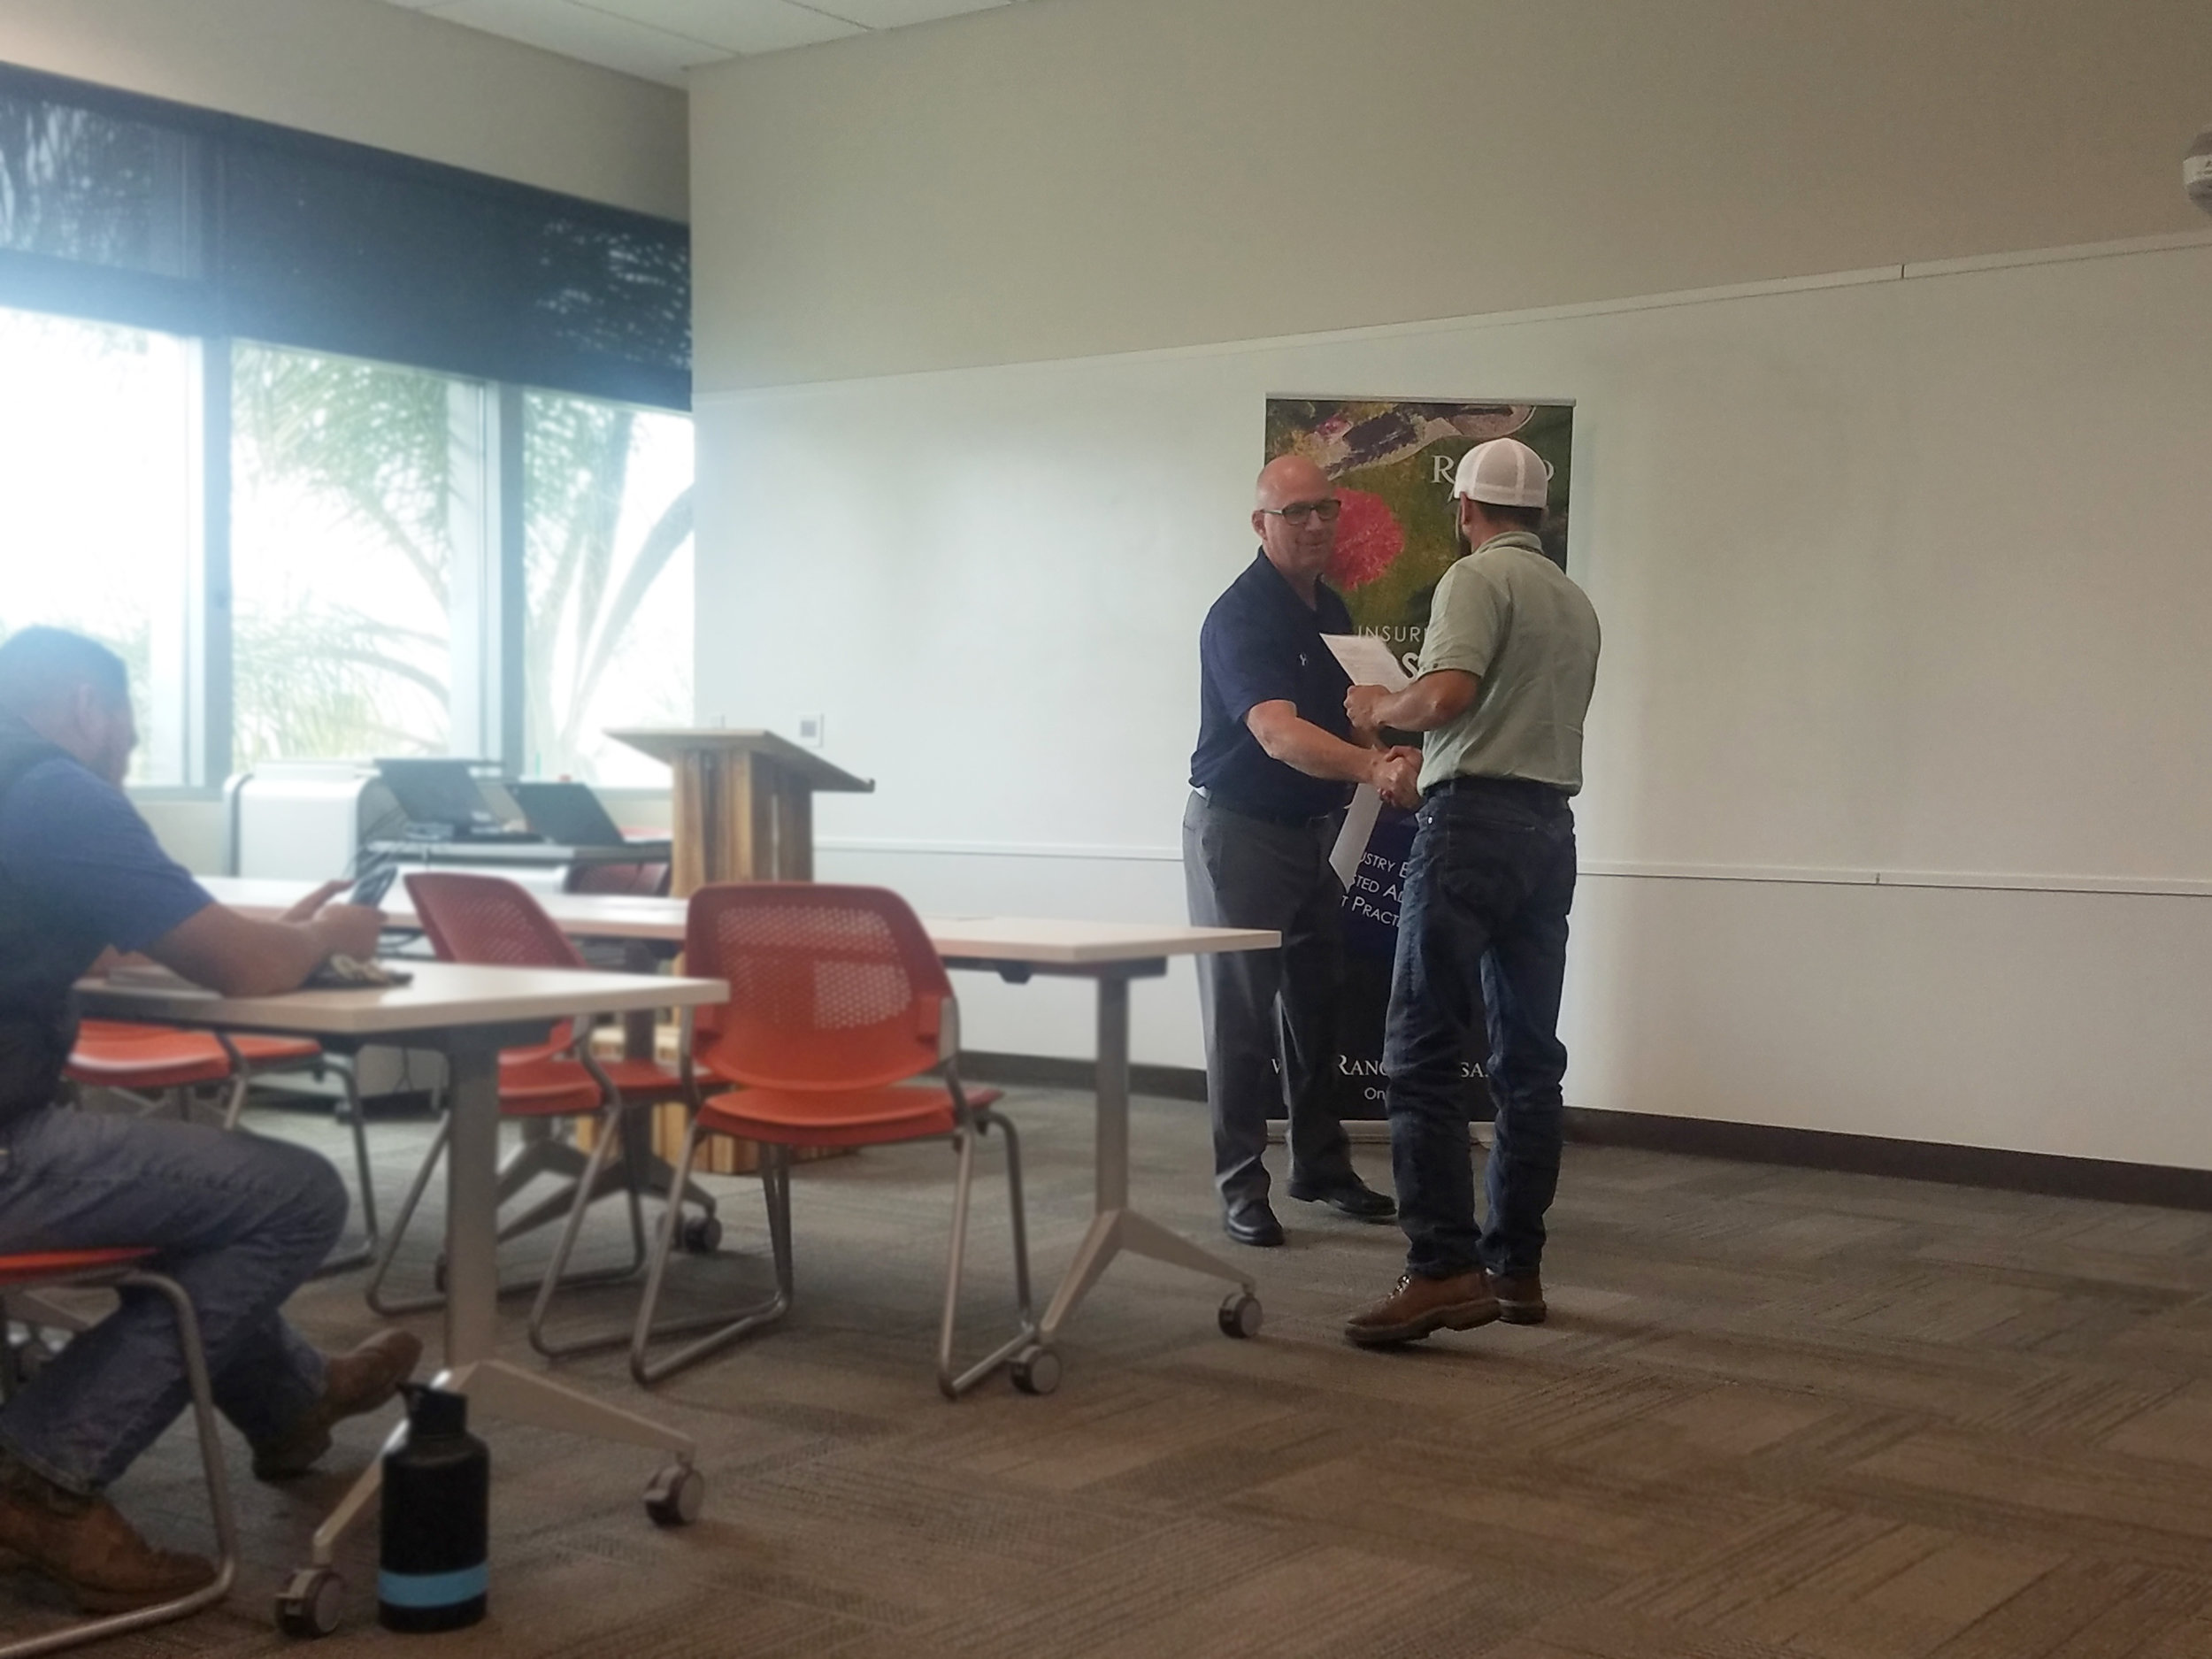 Image of Steve shaking hands and presenting to certificate to a class participant.